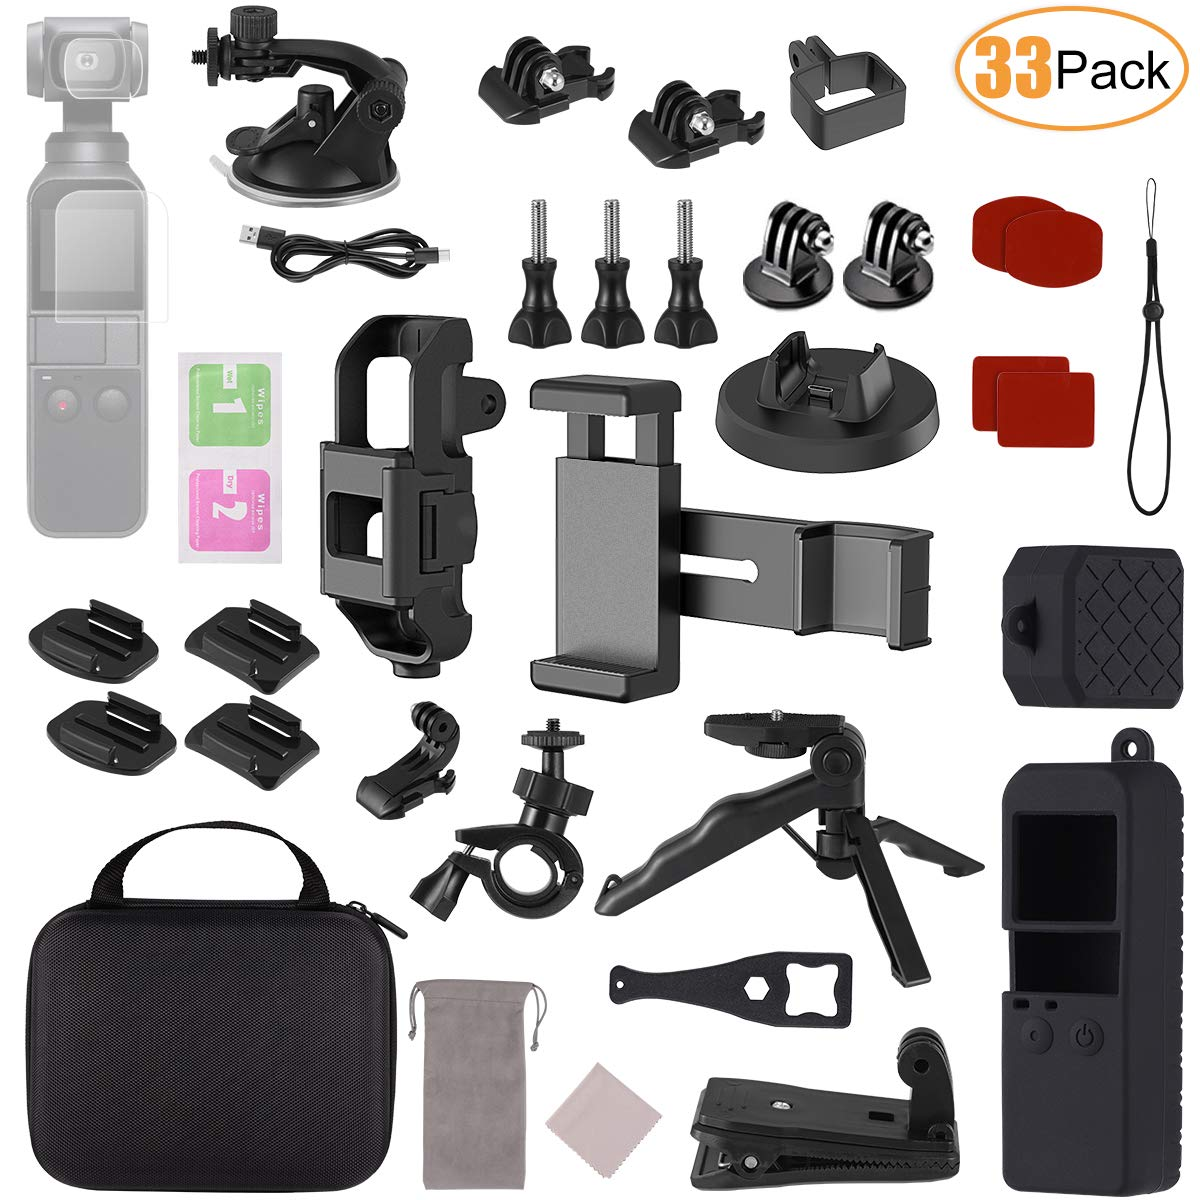 Aotnex Expansion Accessories Kit 33 Pack for DJI Osmo Pocket Handheld Camera Including Osmo Pocket Phone Clip Mount and Tripod Holder with Travel Case for Easy Organization